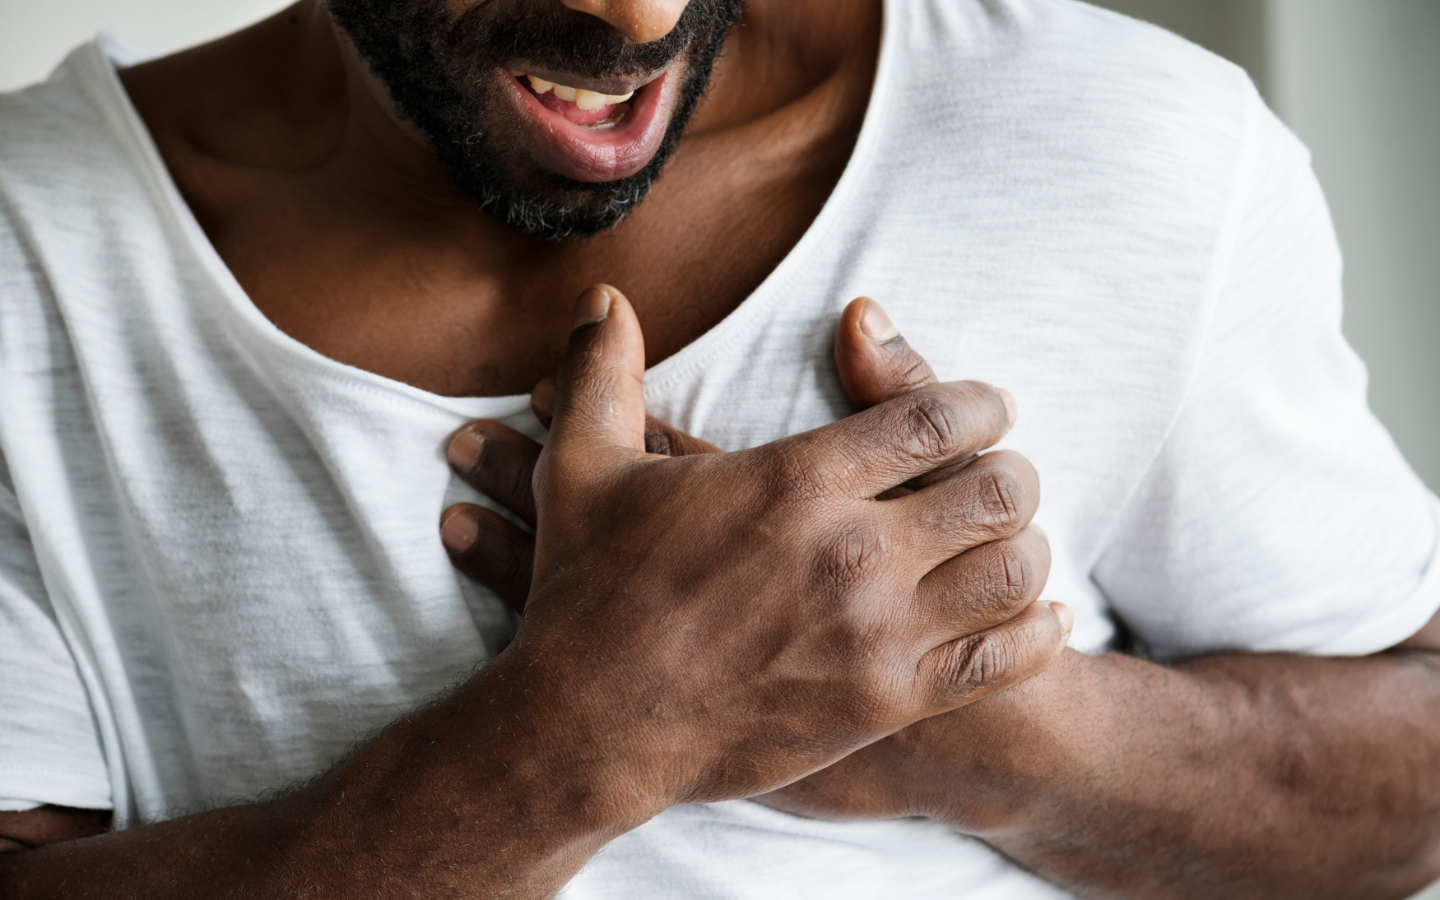 Chest pain: Should I visit the ER?